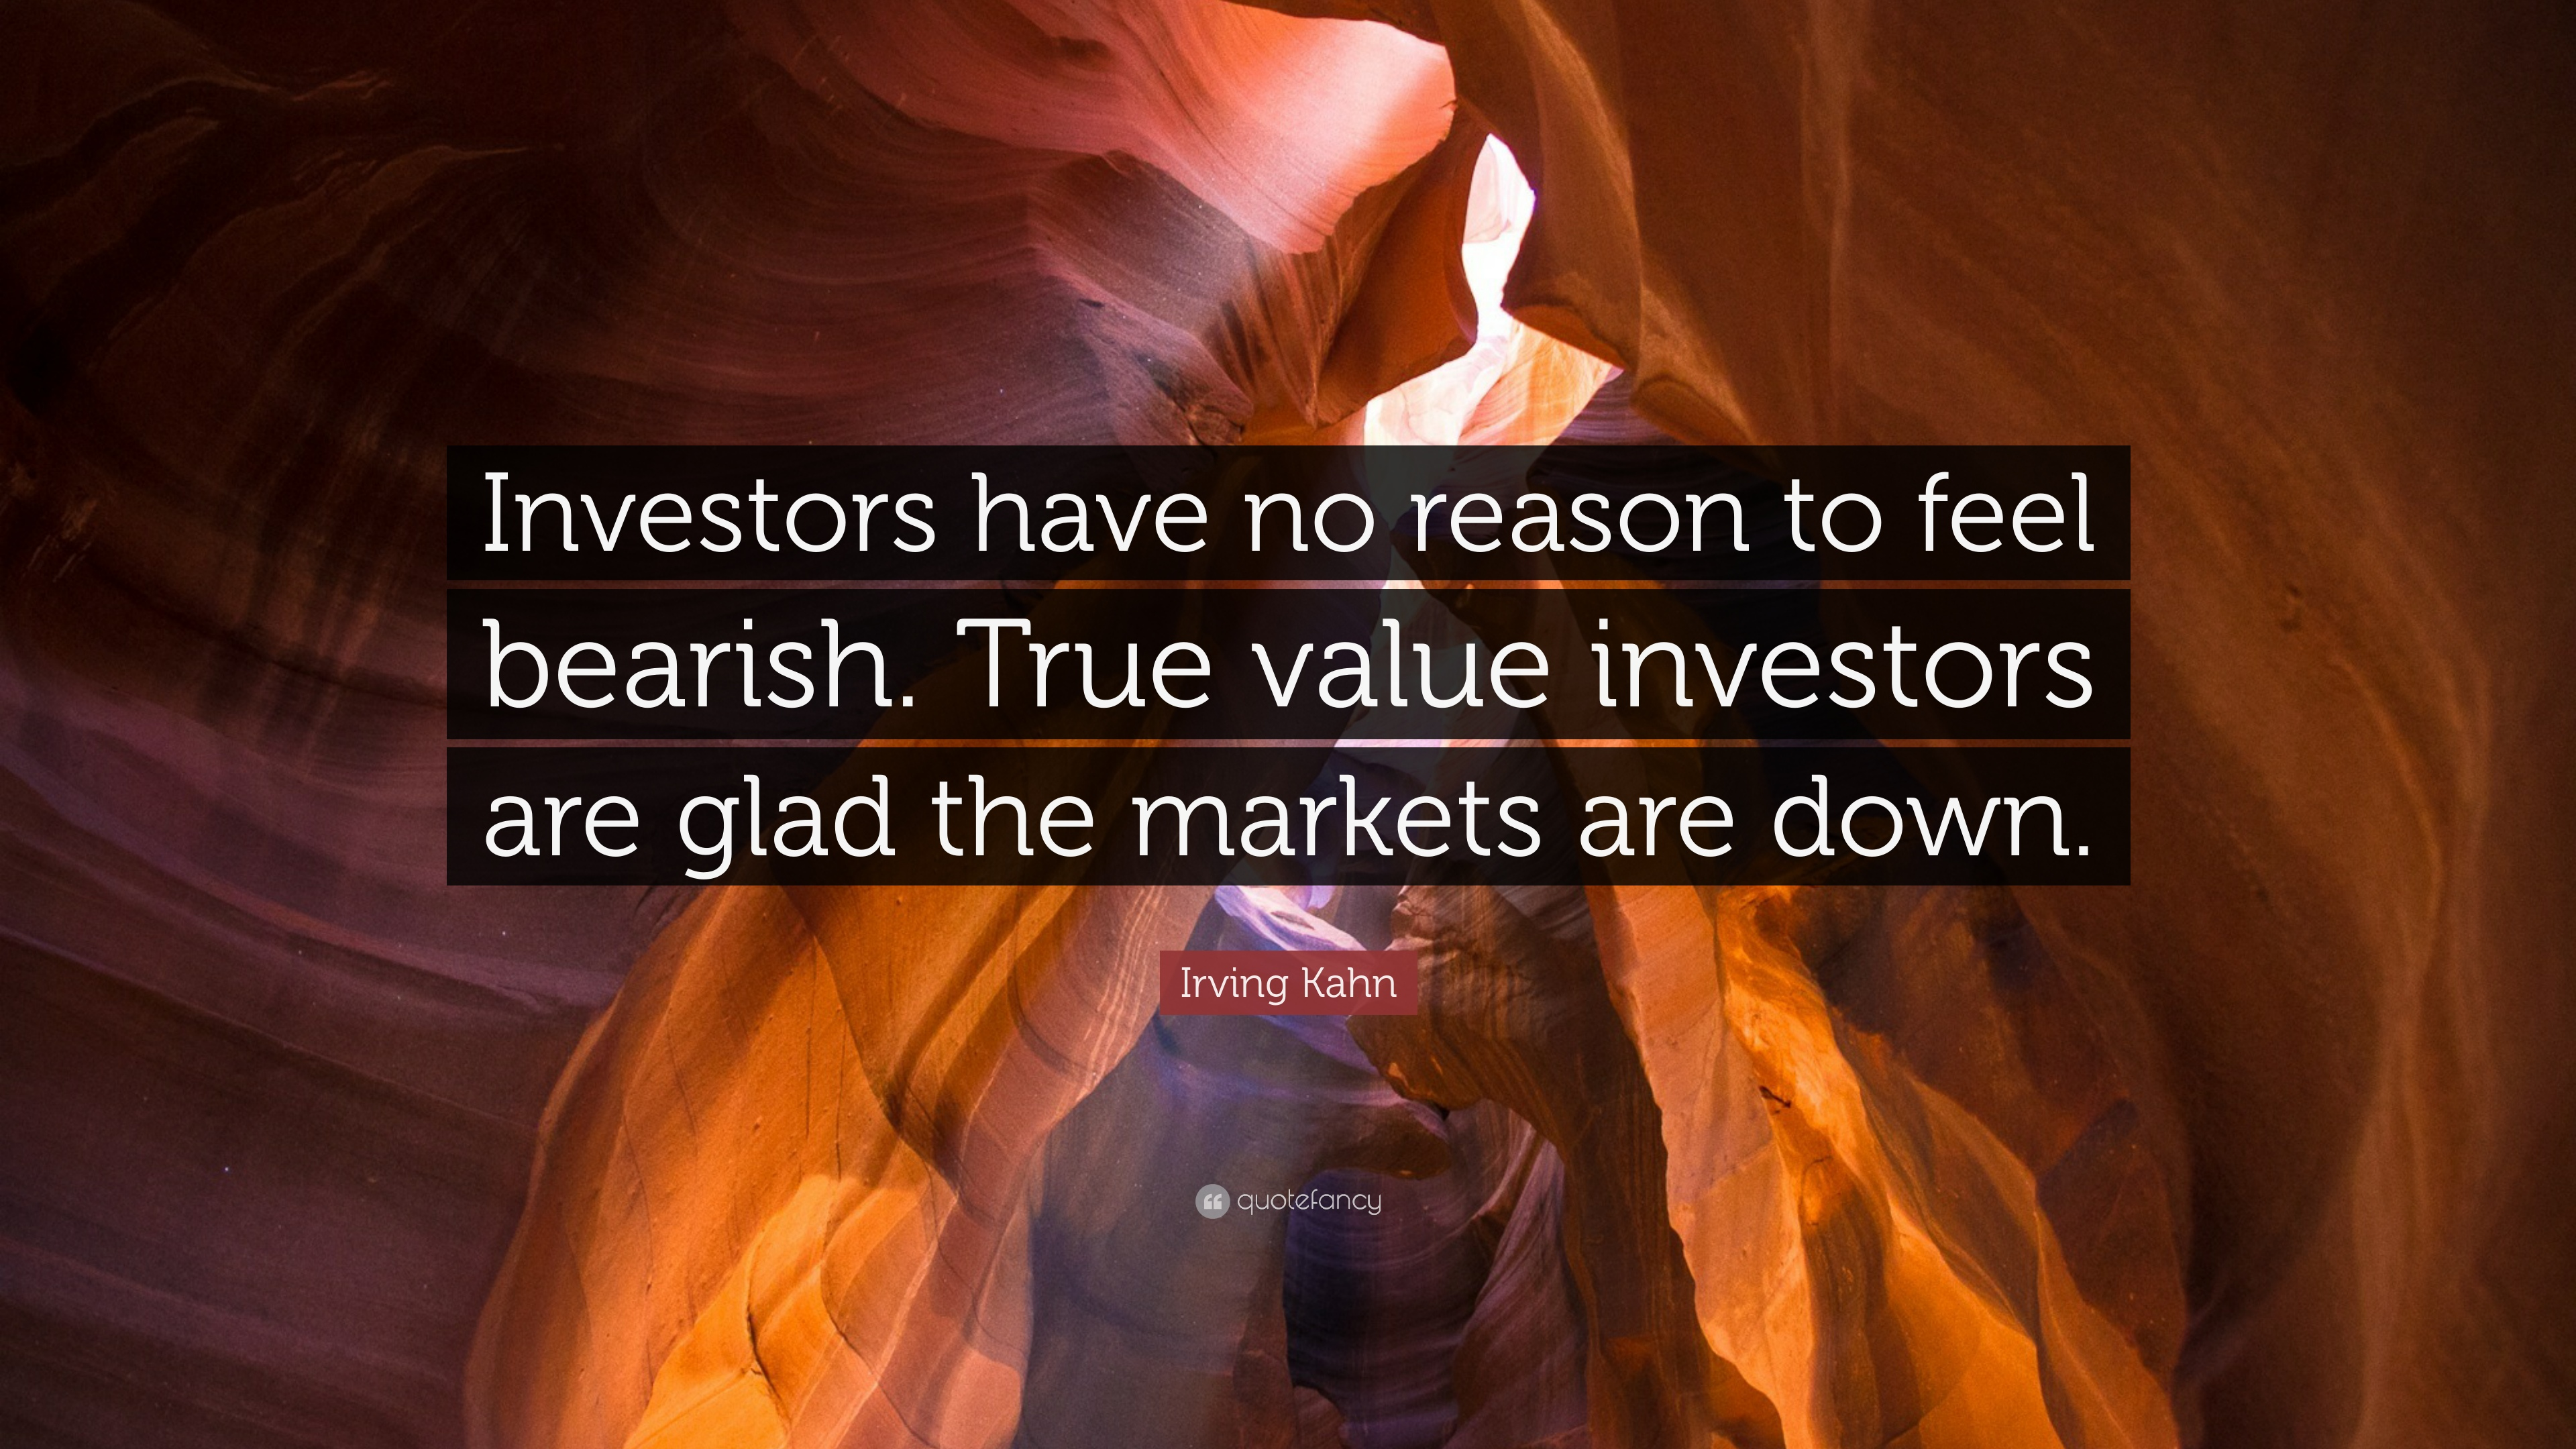 Irving Kahn Quote Investors Have No Reason To Feel Bearish True